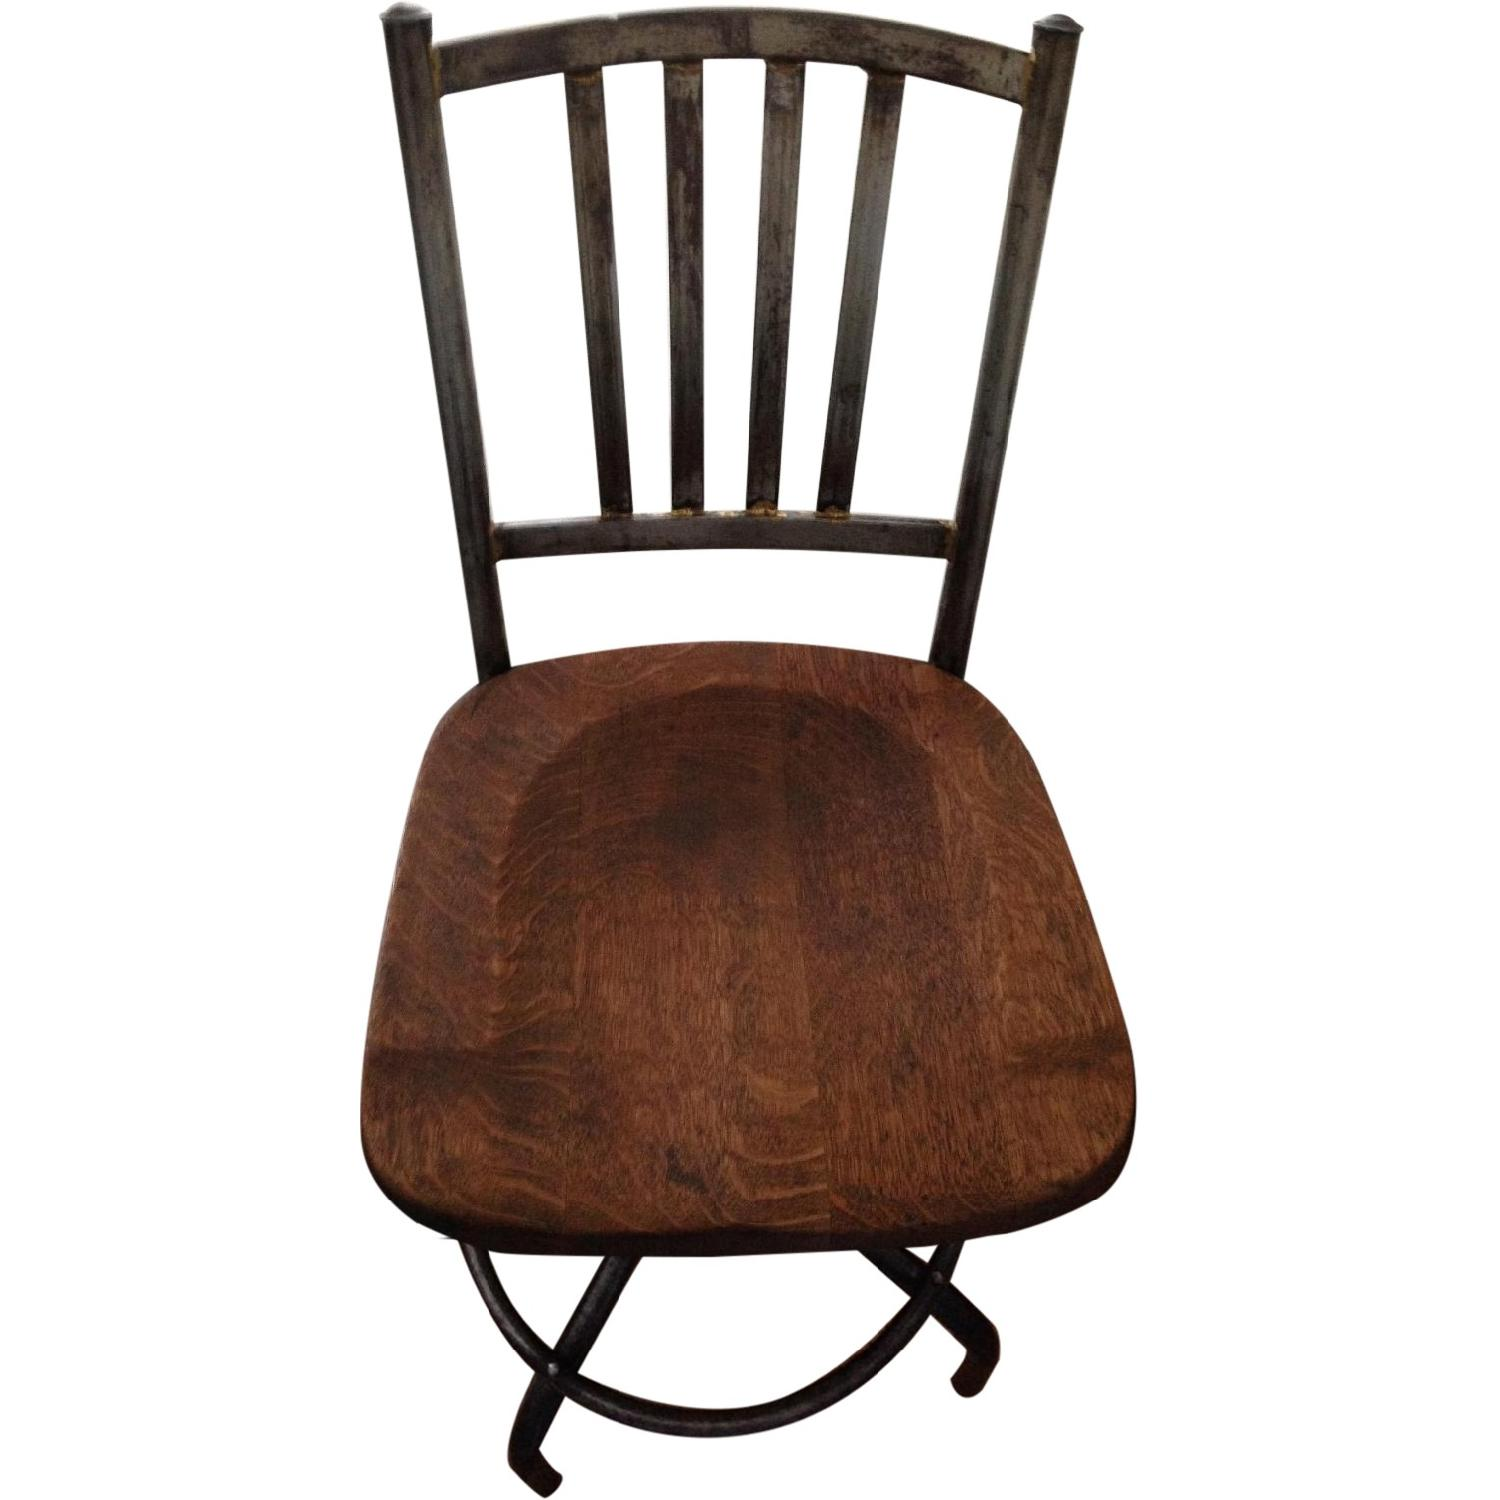 Antique Wood & Iron Swivel Chair